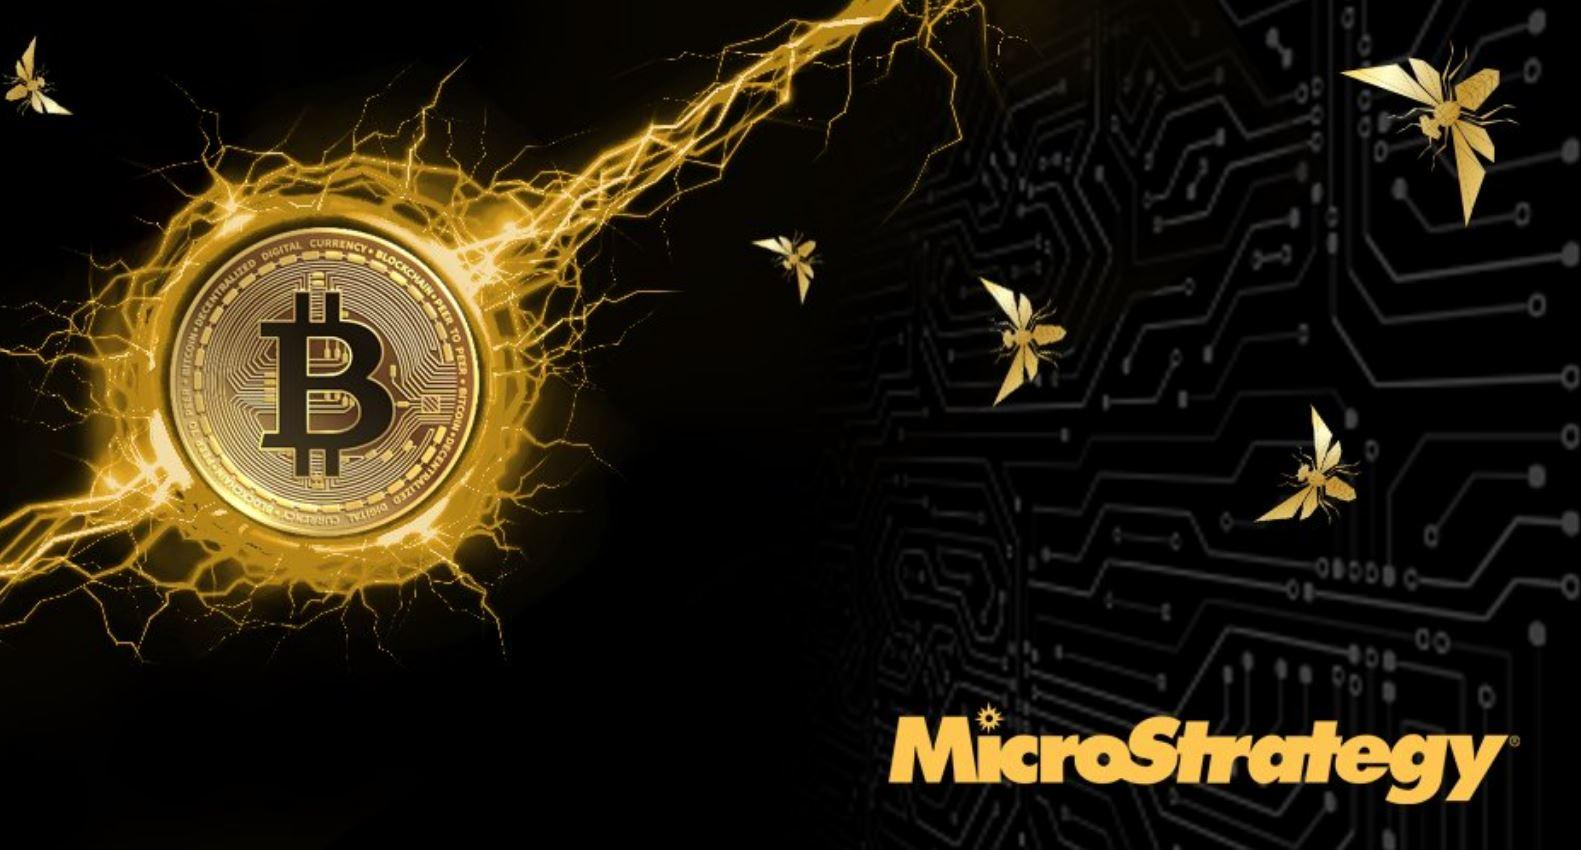 MicroStrategy and Bitcoin